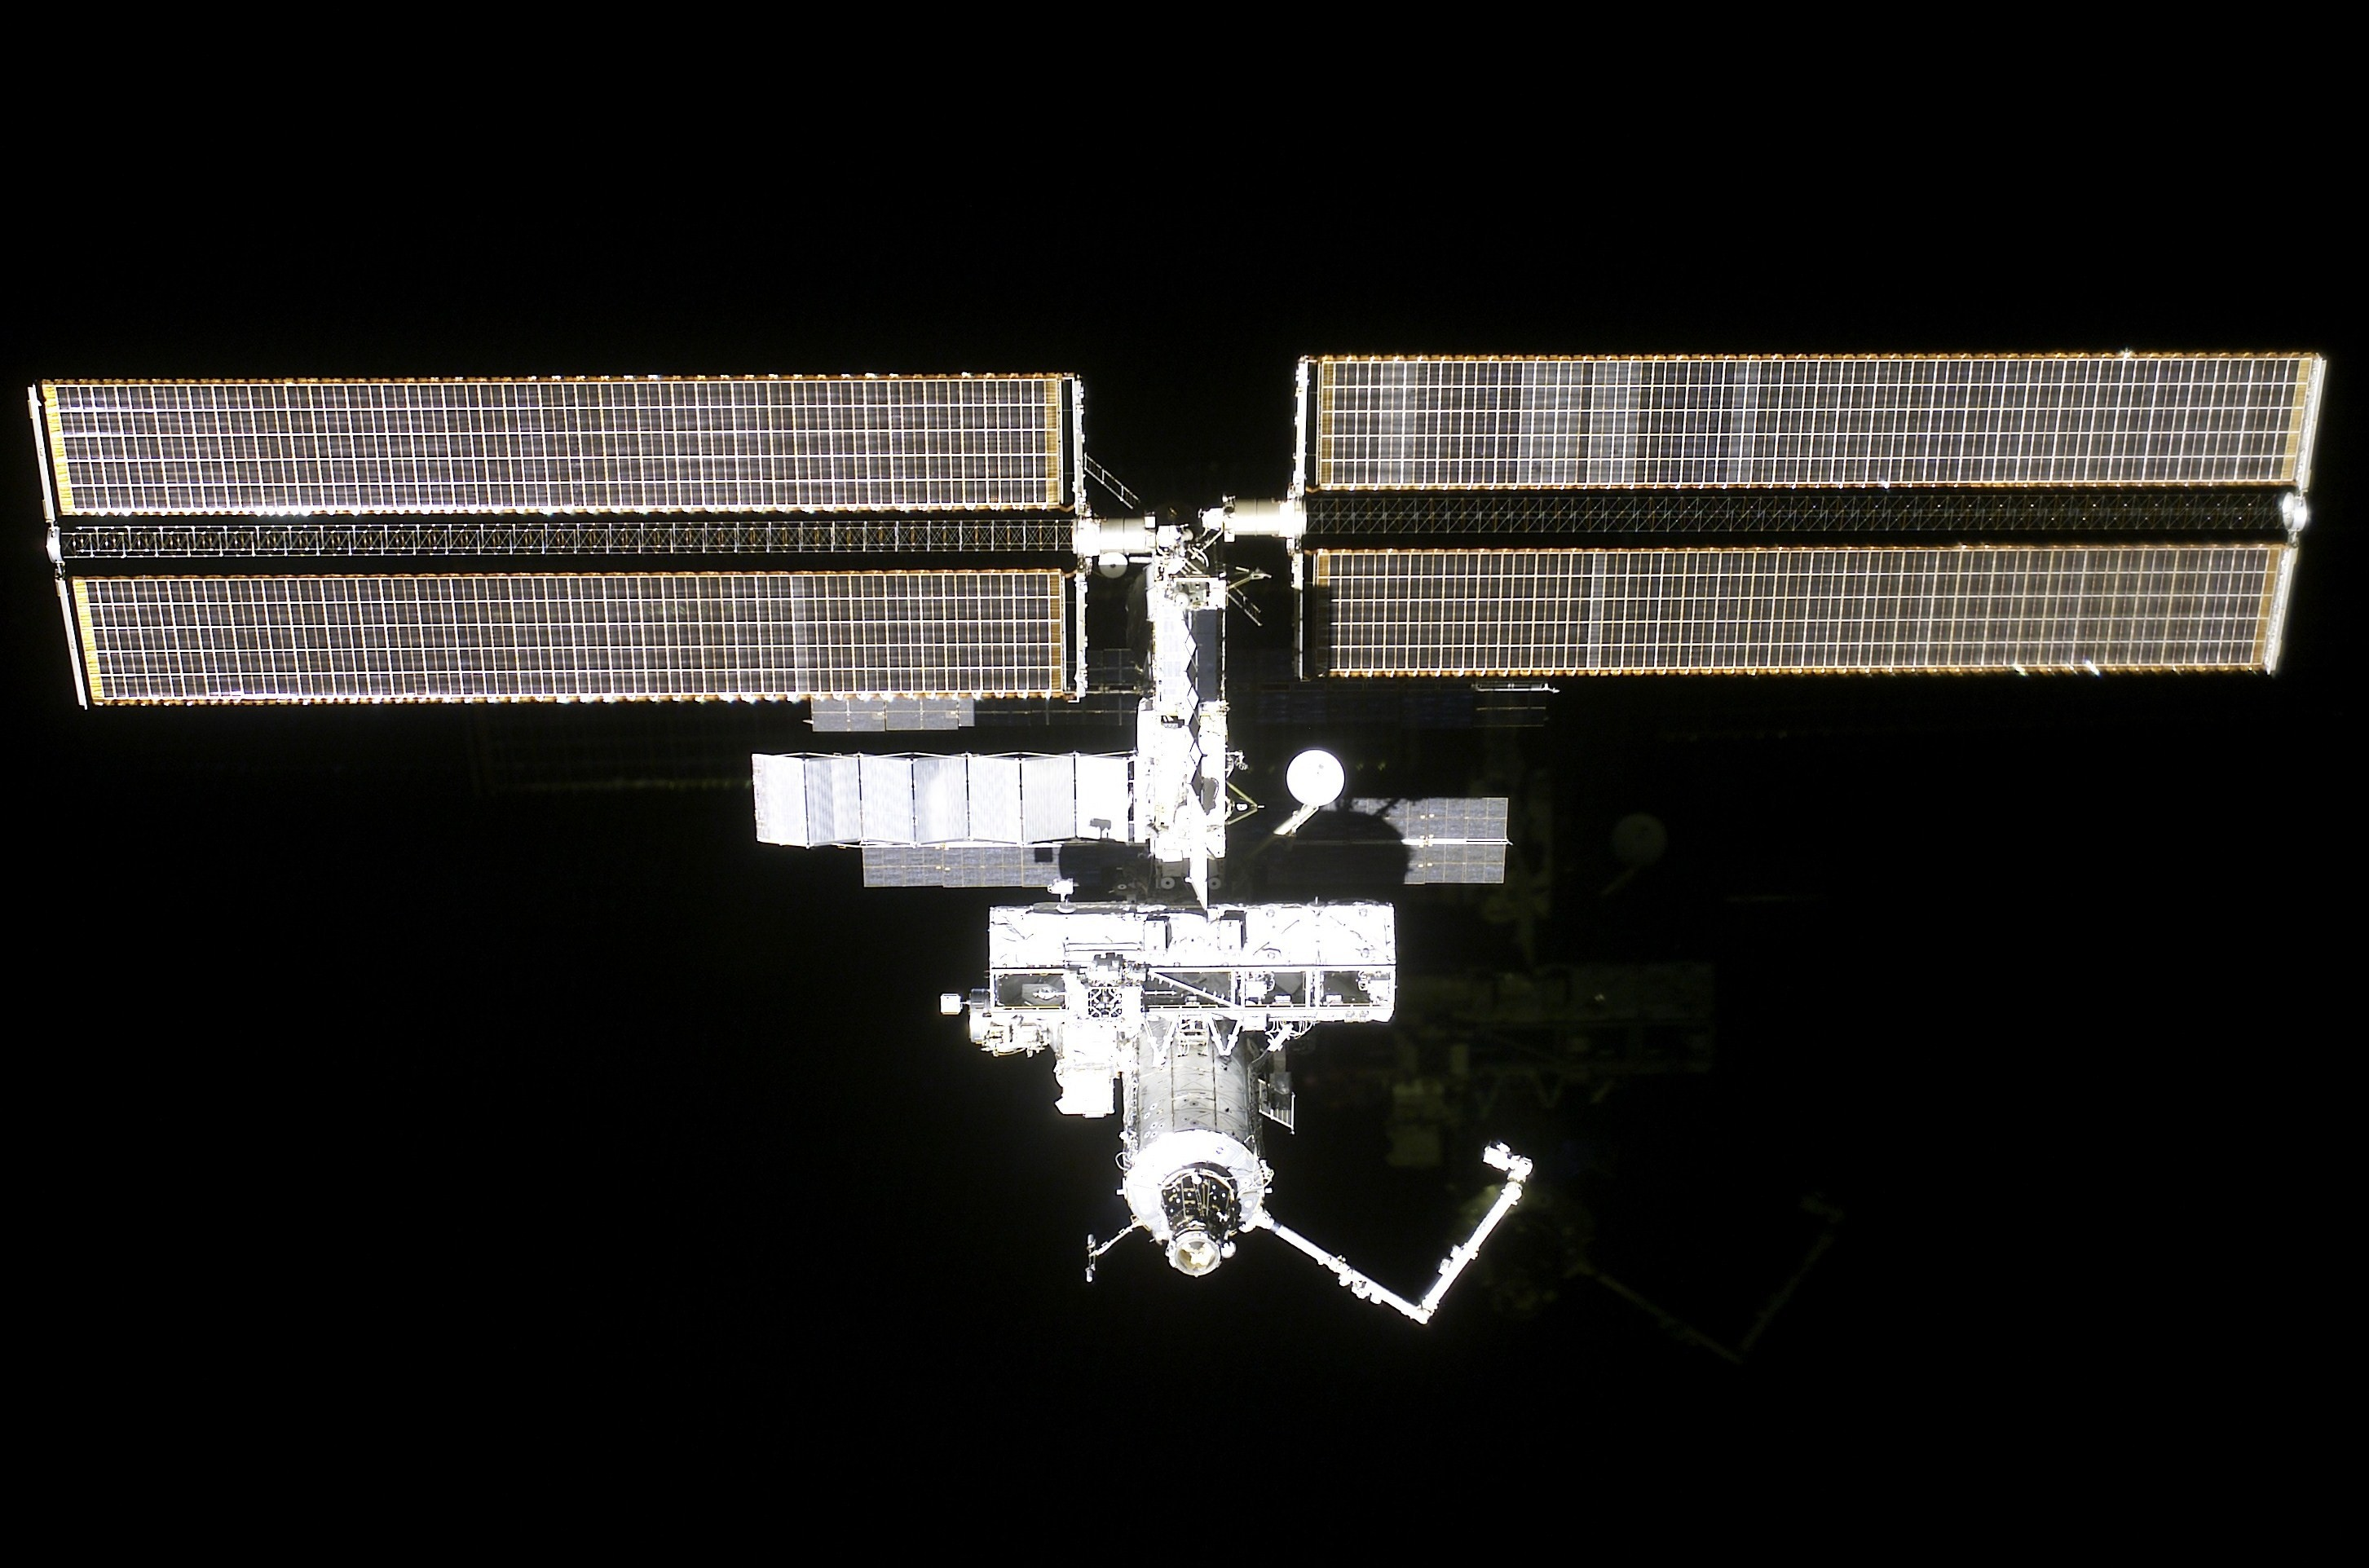 The history and role of the international space station